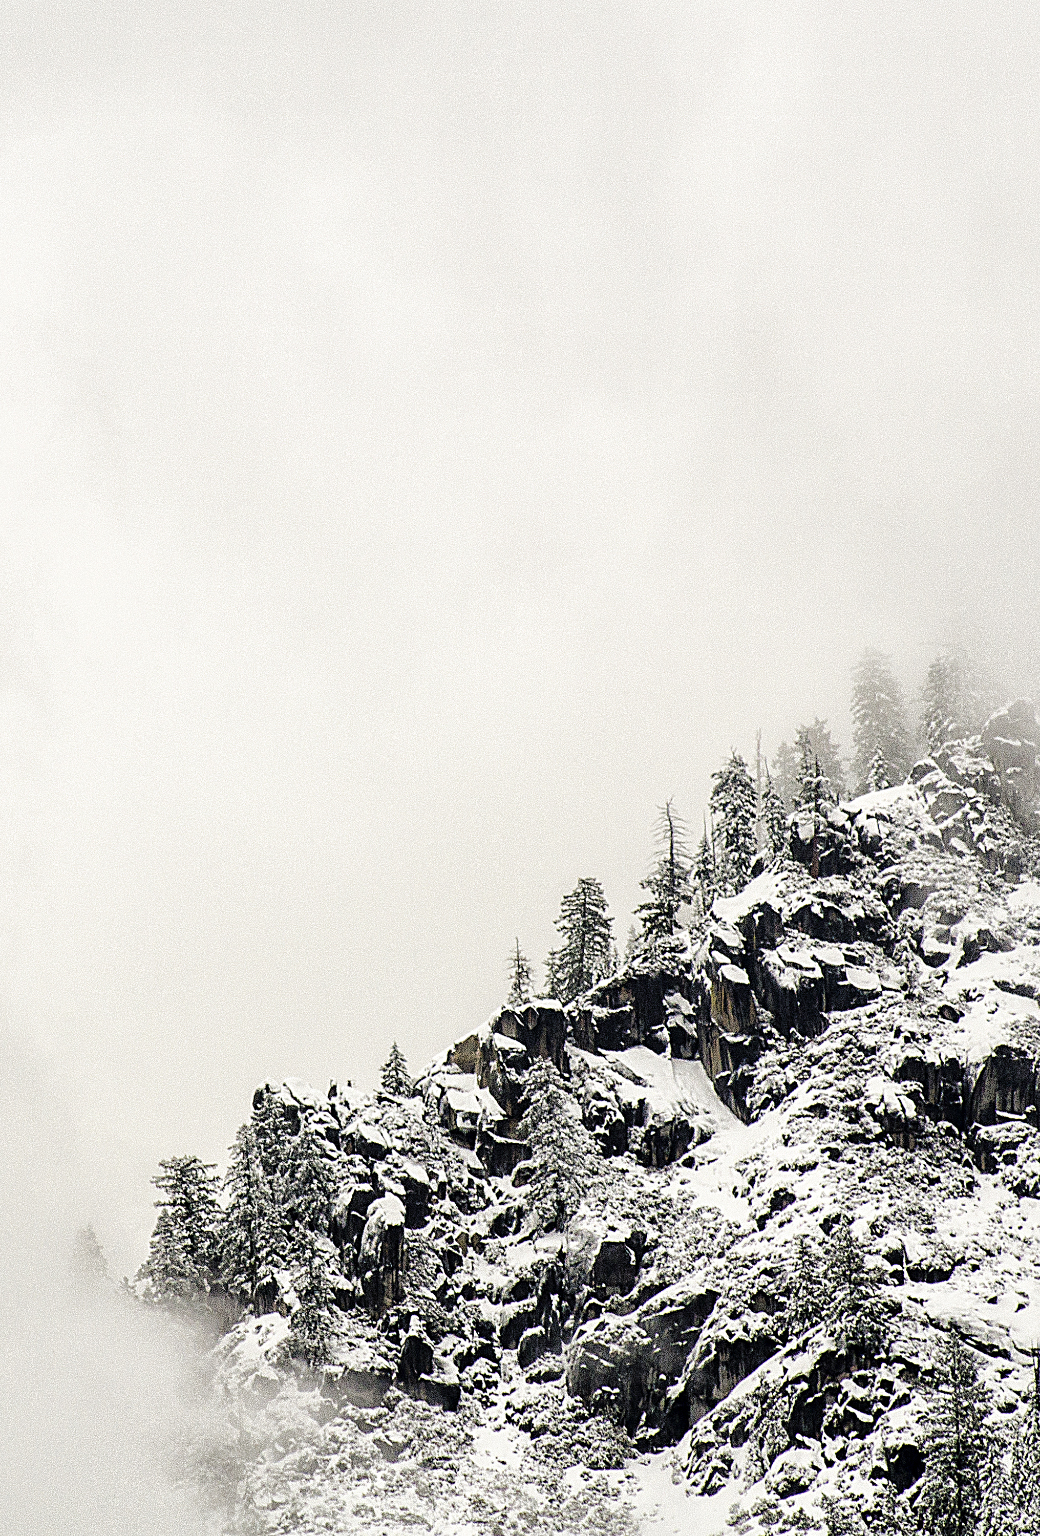 Wasim_Muklashy_Photography_Yosemite_Lady_In_White_iPhone5